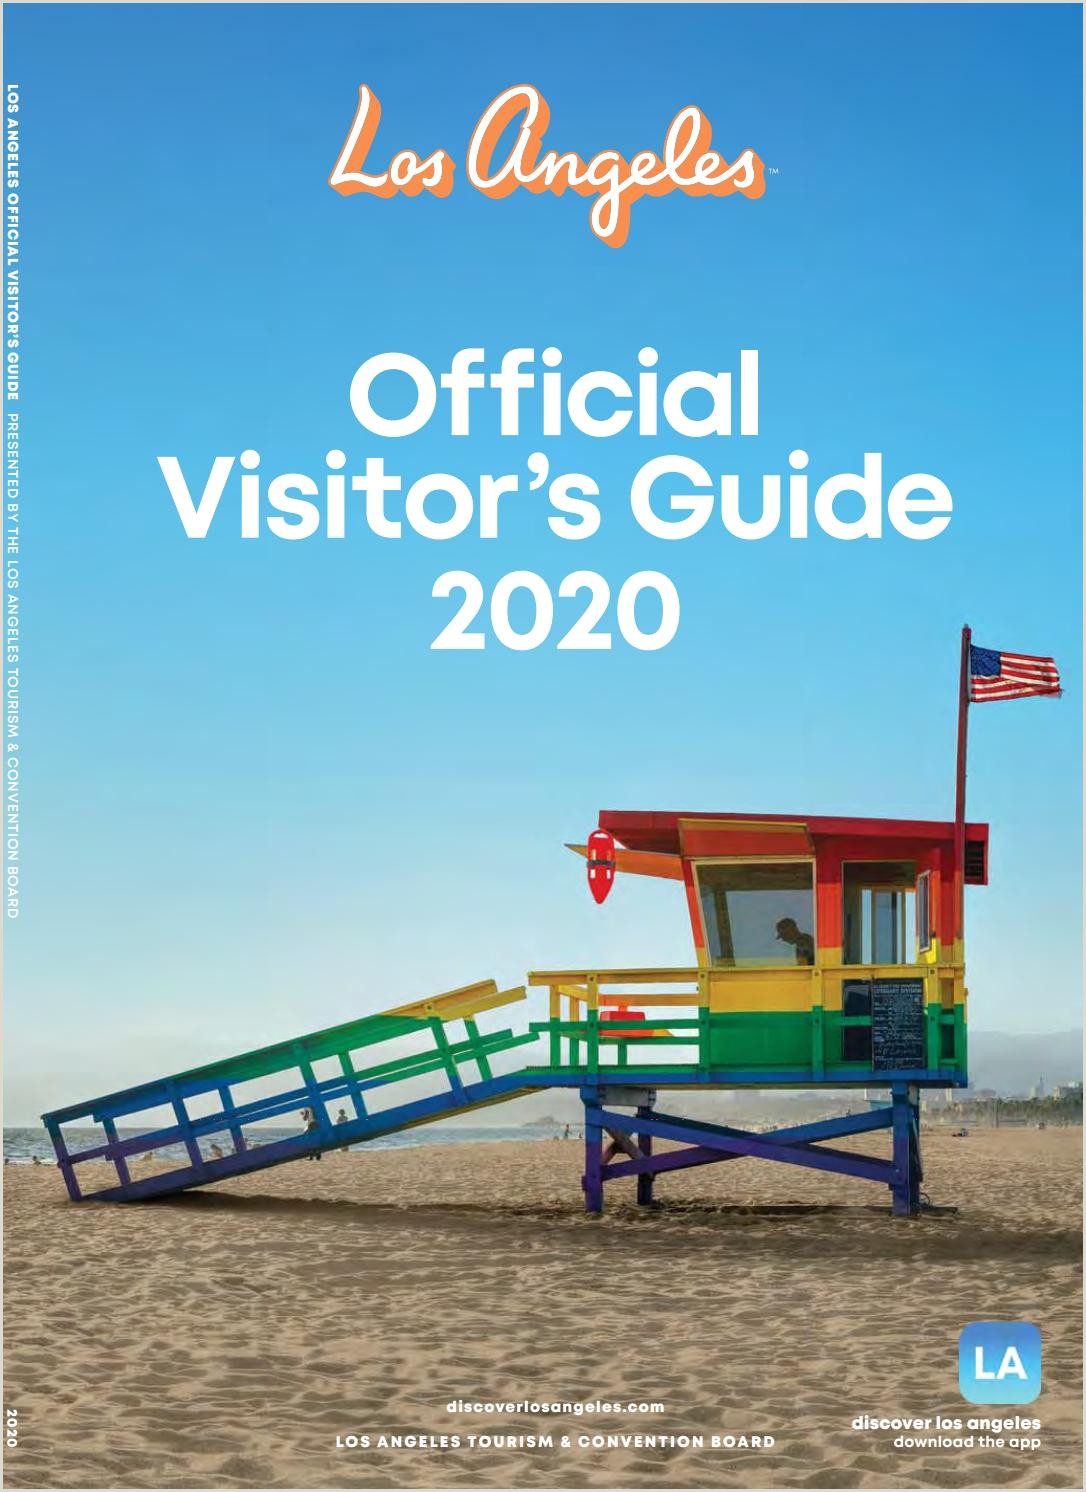 Best Business Cards Online 2020 For Nautical Los Angeles Ficial Visitor S Guide 2020 By Los Angeles